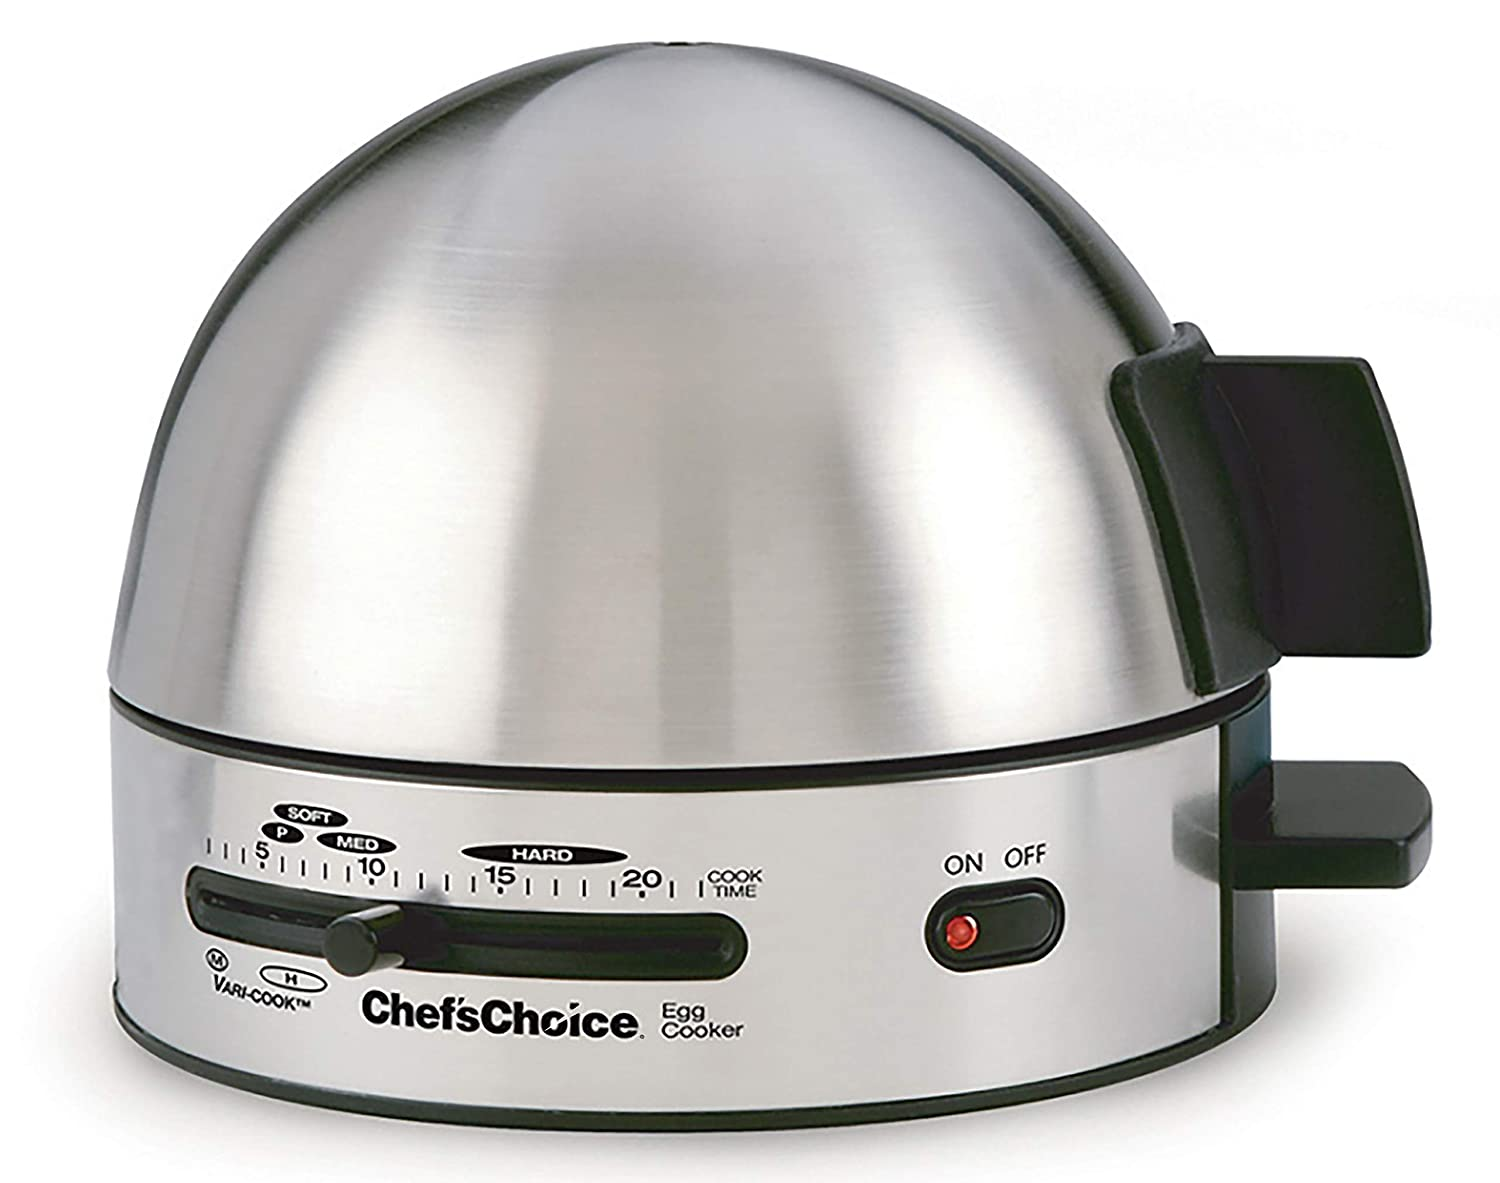 Chef sChoice 810 Gourmet Egg Cooker with 7 Egg Capacity Makes Soft Medium Hard Boiled and Poached Eggs Features Electronic Timer Audible Ready Signal Nonstick Stainless Steel Design, 7-Eggs, Silver